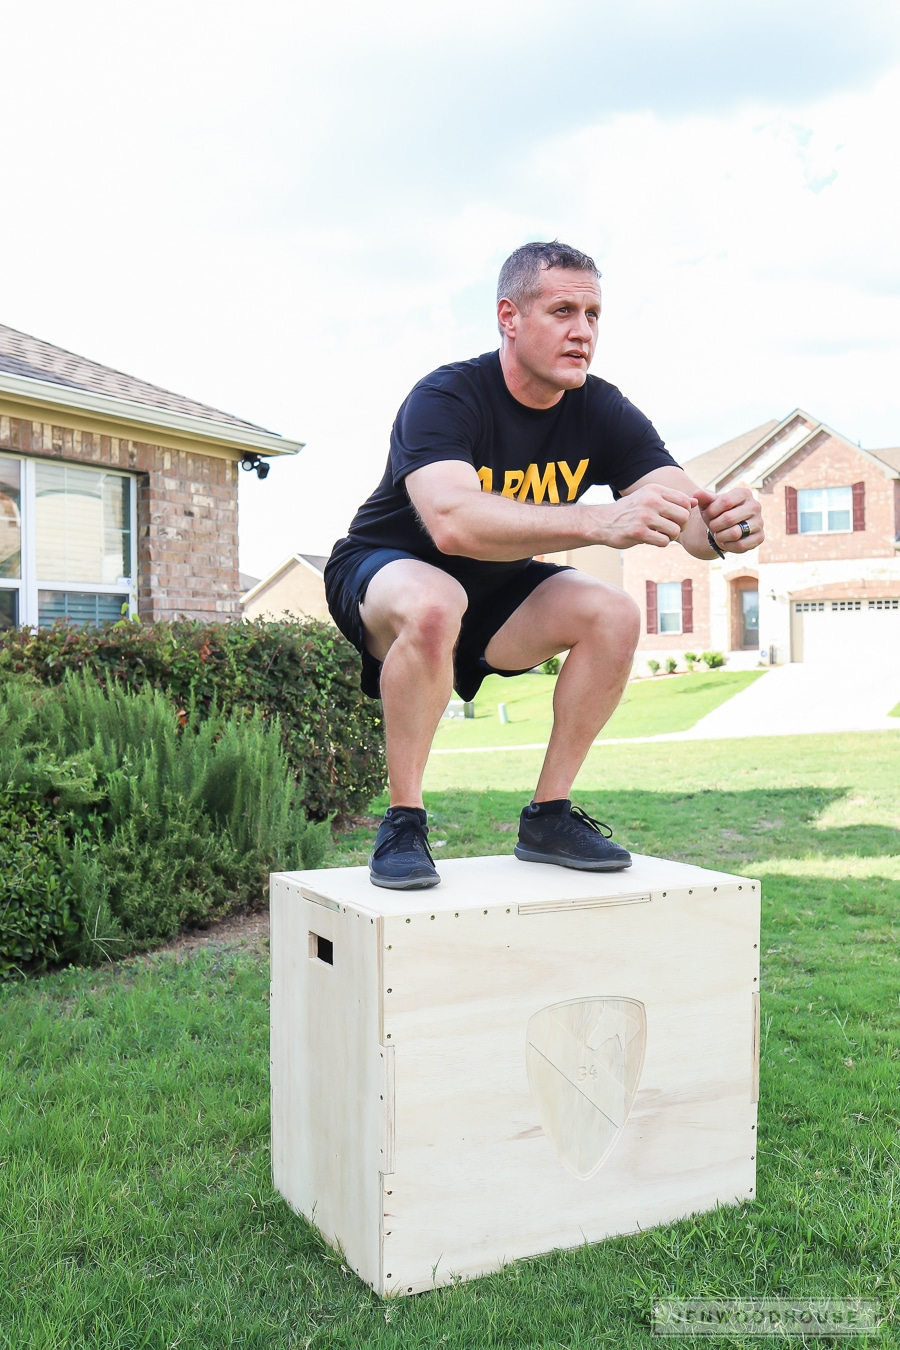 How to make a DIY Plyometric Box for Box Jump Exercises